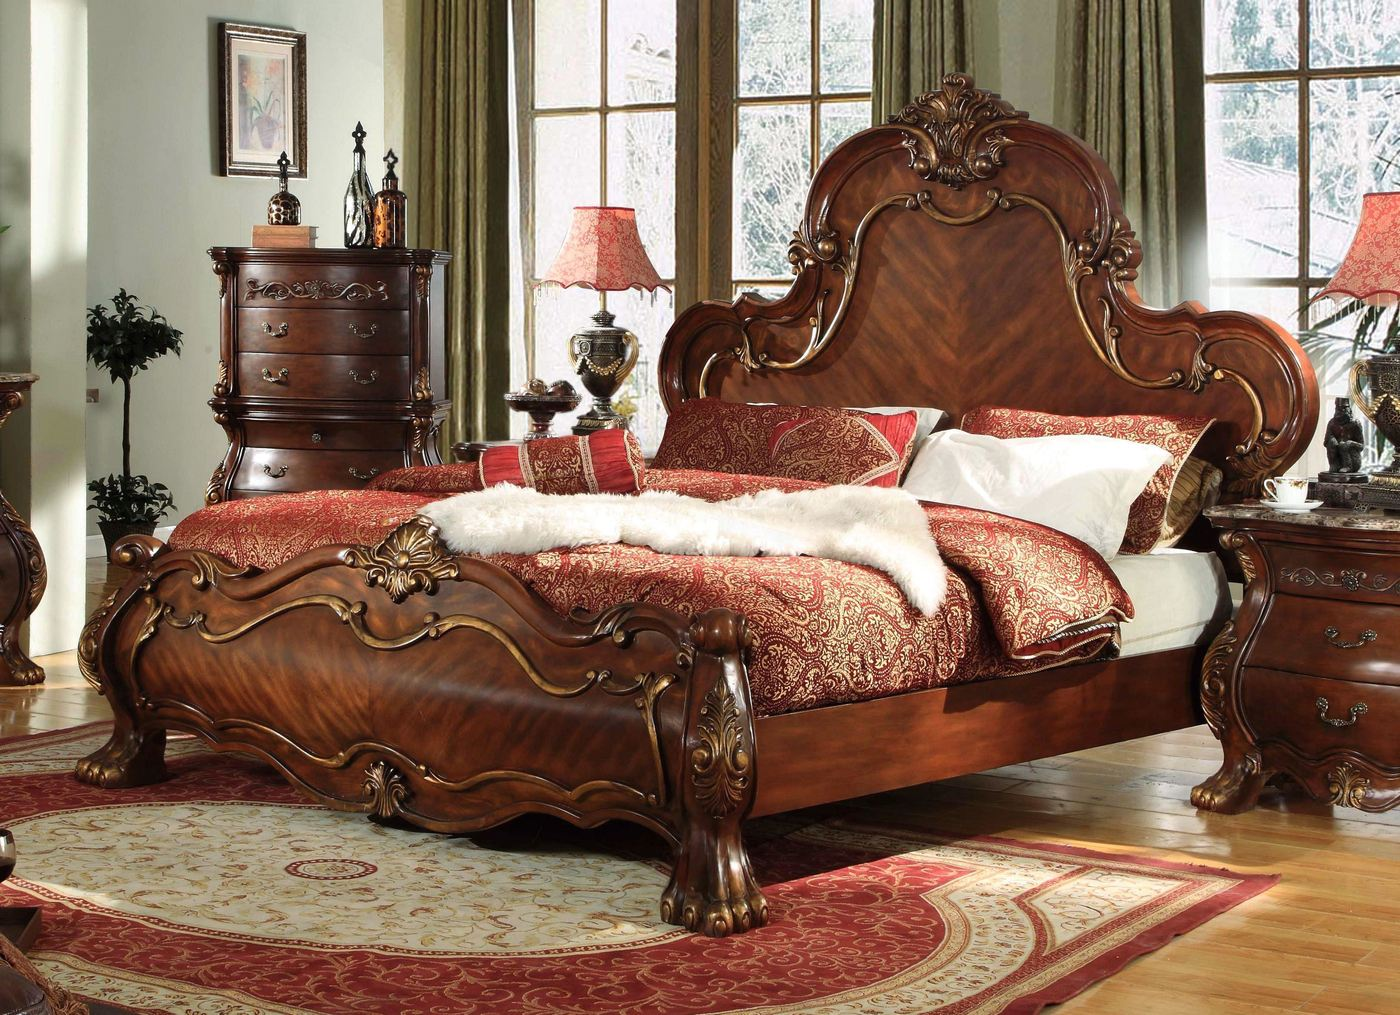 French Baroque Bed Of Ornate French Rococo Royale Queen Bed With Chestnut Finish